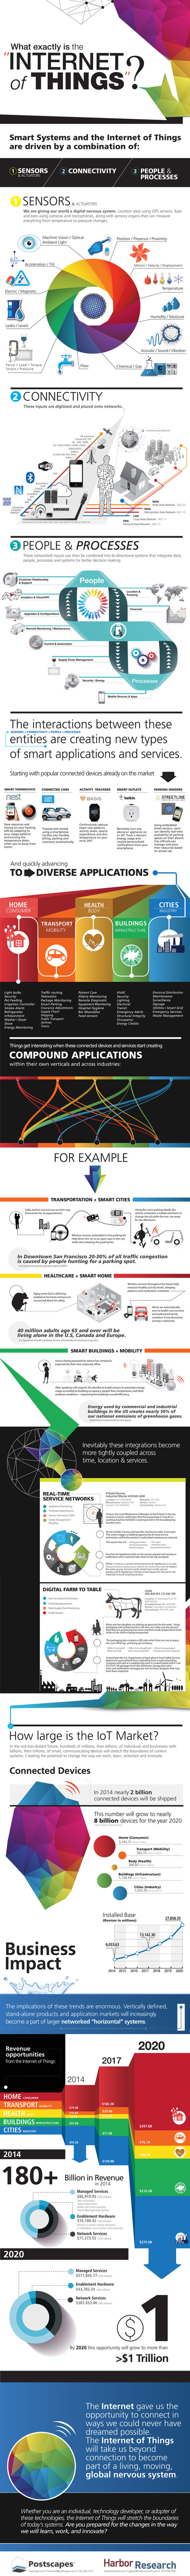 INFOGRAPHIC: What Is The Internet of Things? | Cloud Central | Scoop.it